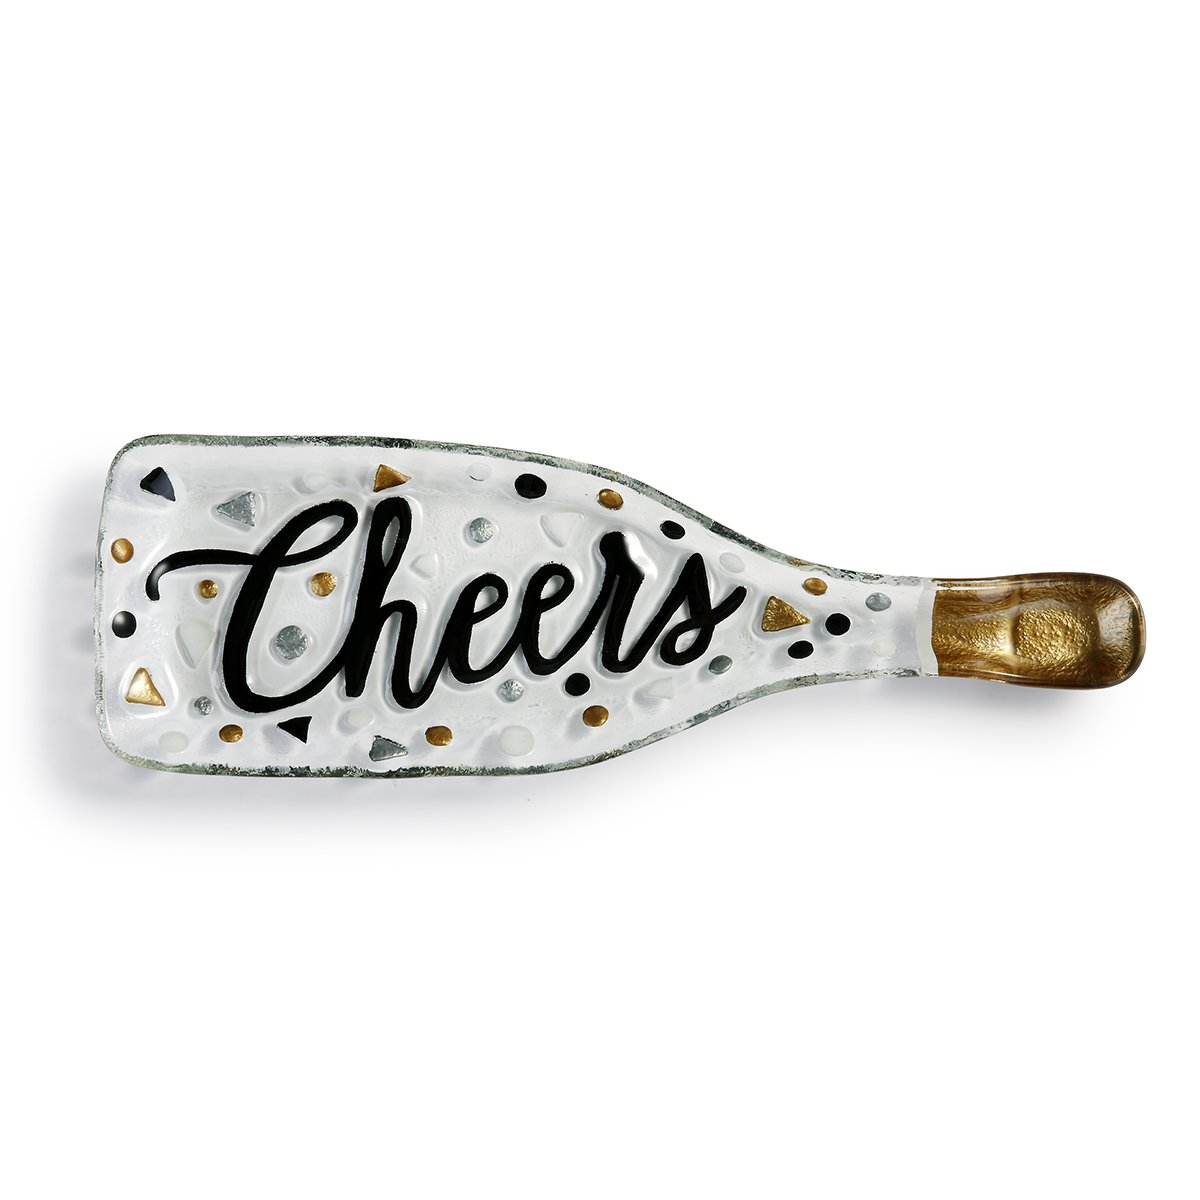 Cheers Script Bottle Shaped Glossy White 14 x 5 Vibrant Glass Accent Plate Demdaco 2020170215